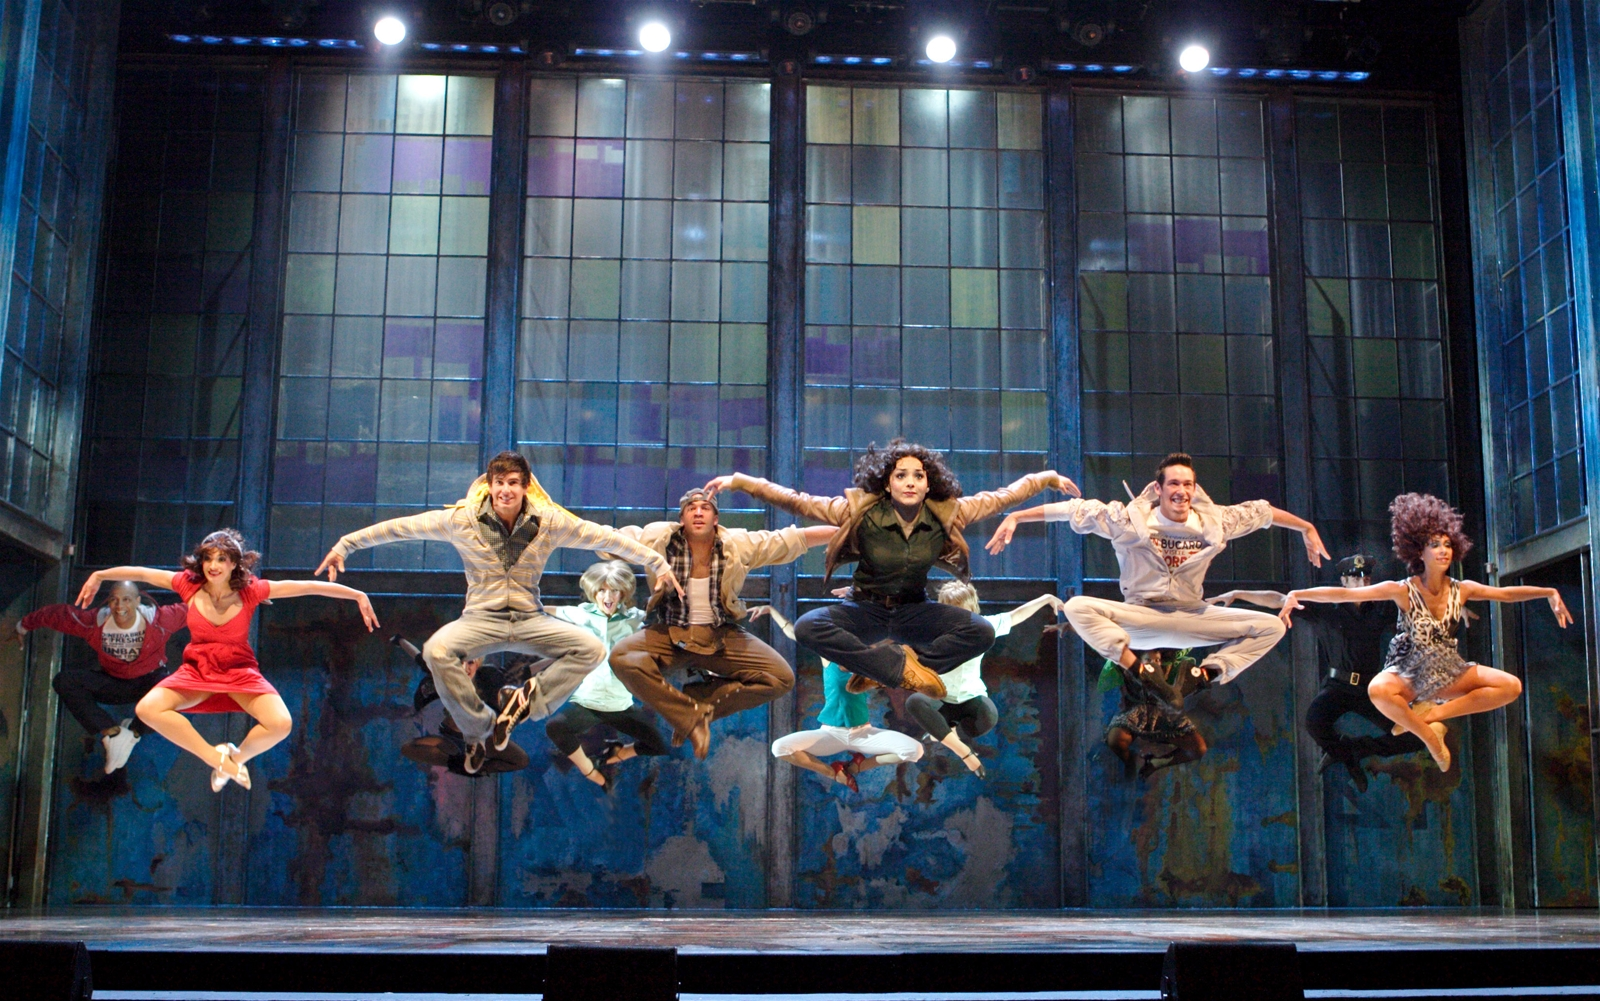 flashdance the musical tickets are an exceptional shallow